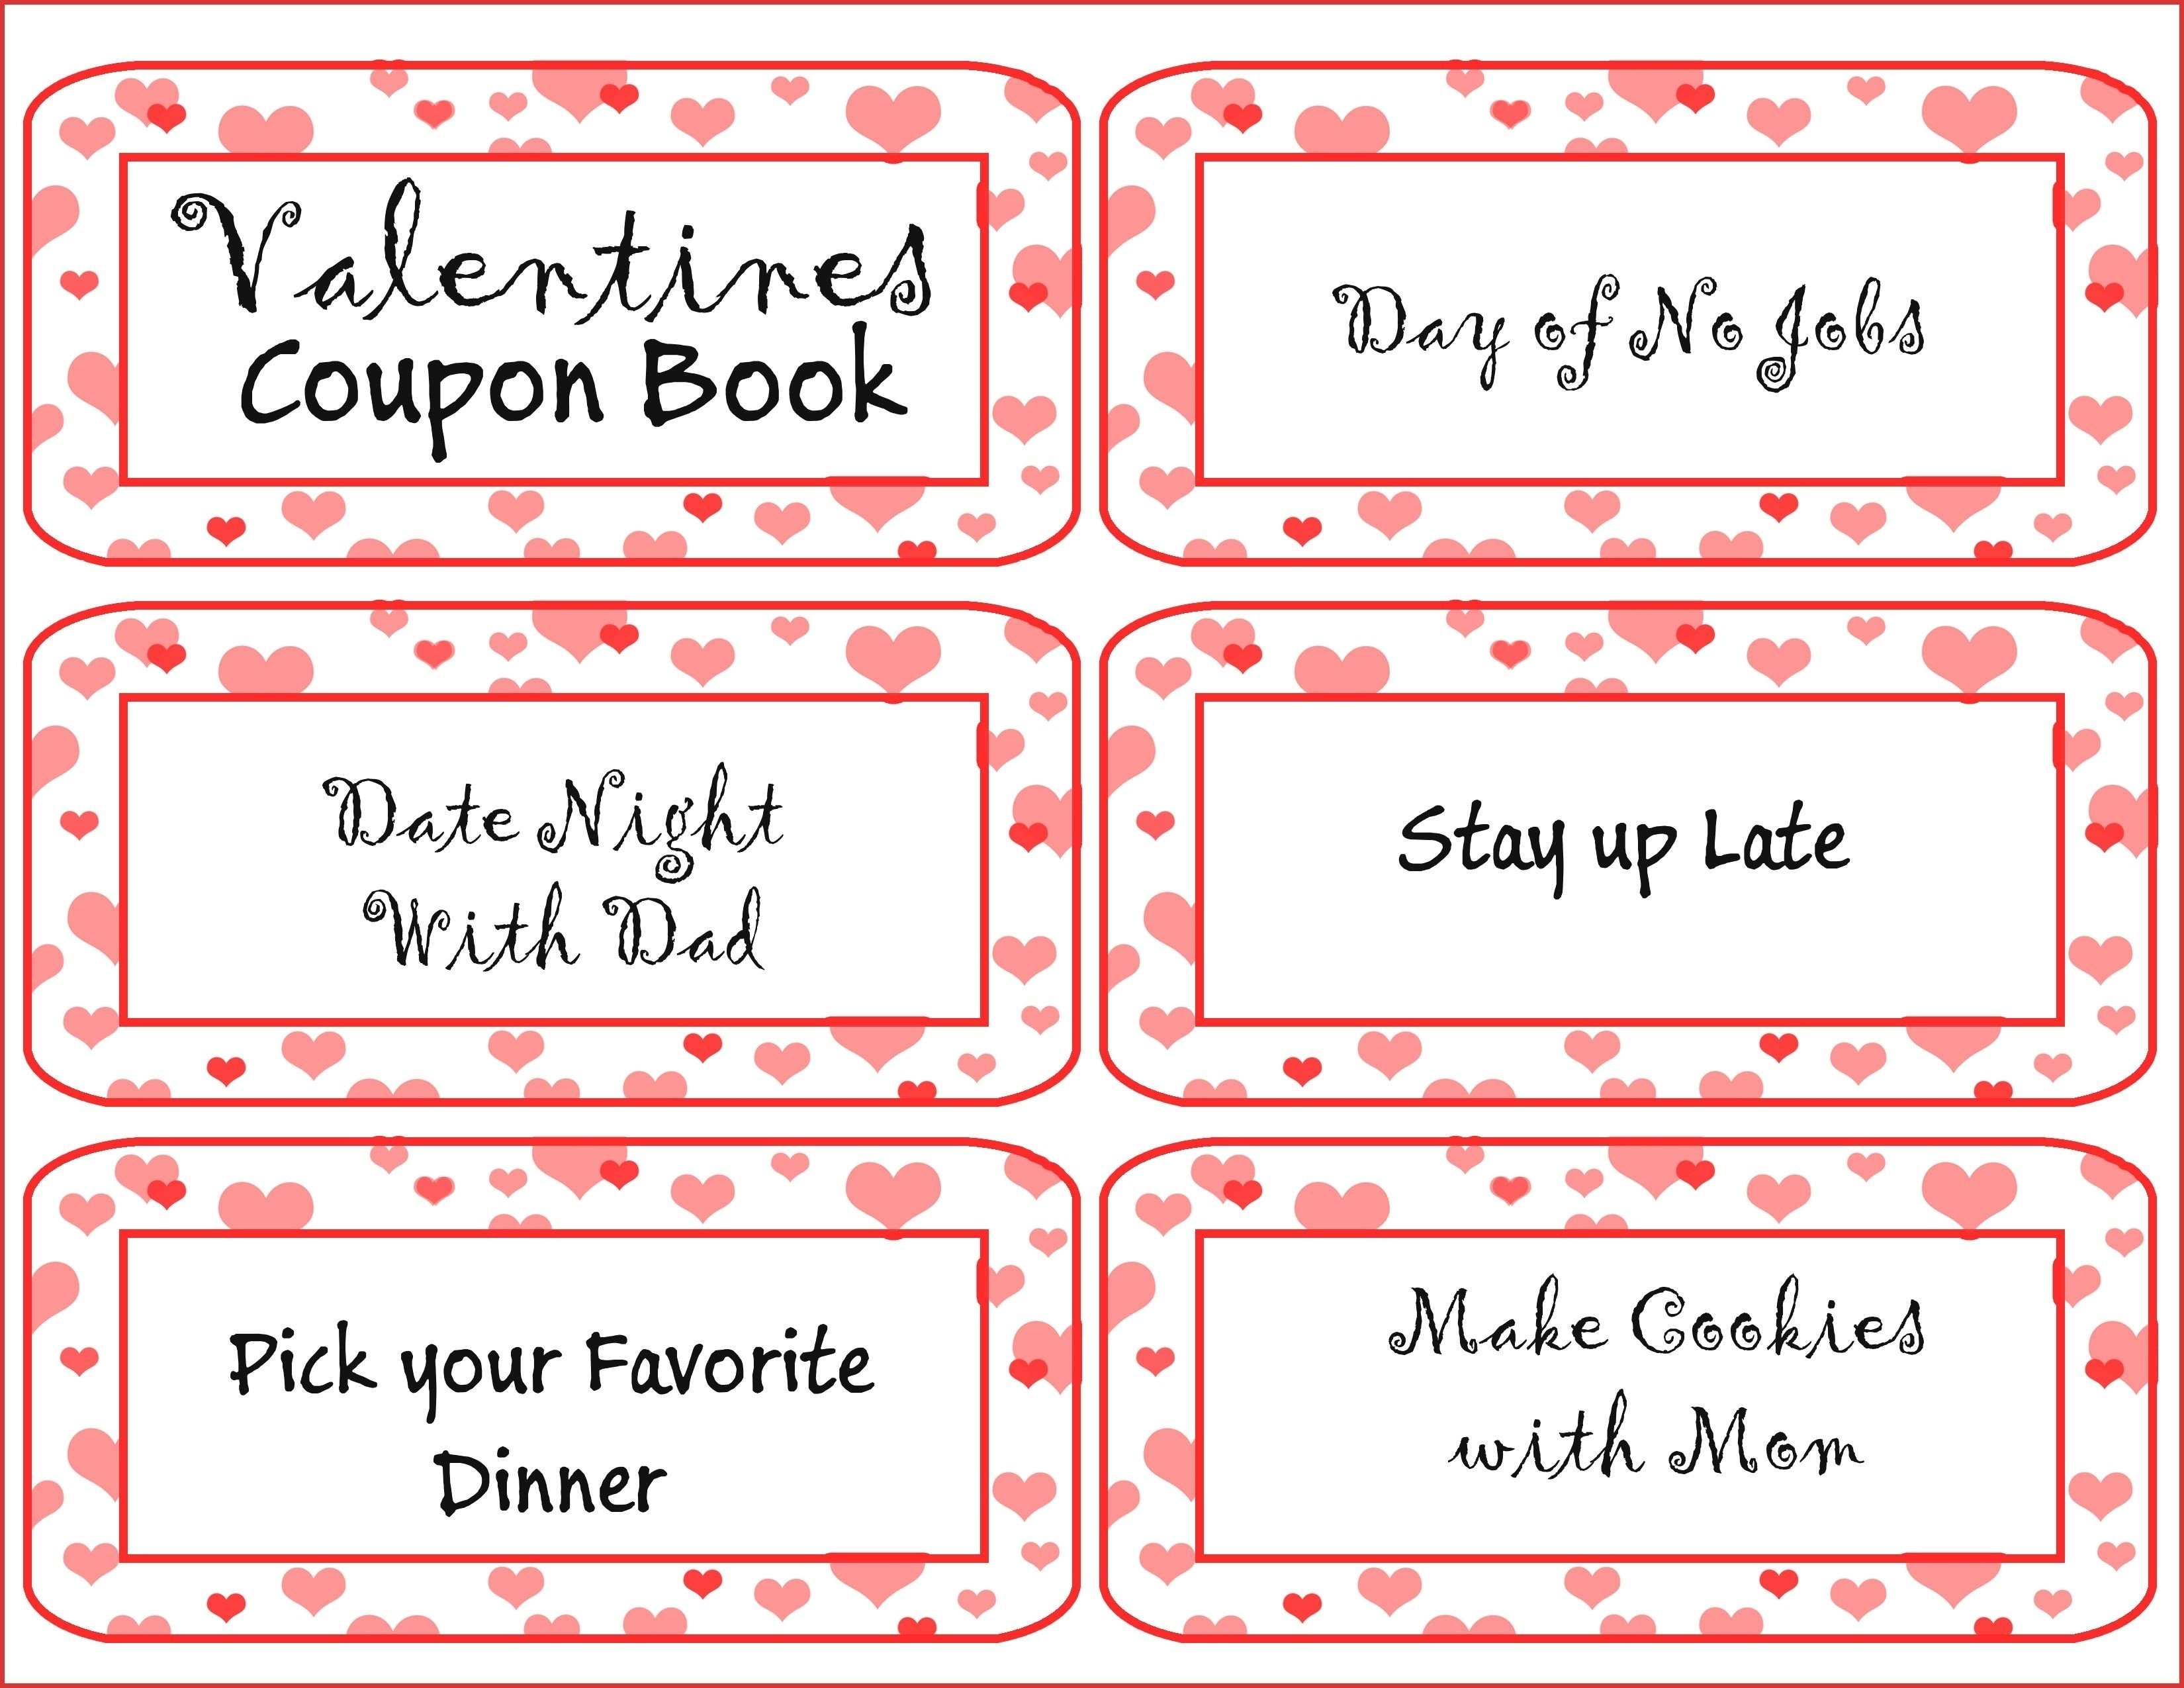 10 Nice Valentine Day Coupon Book Ideas